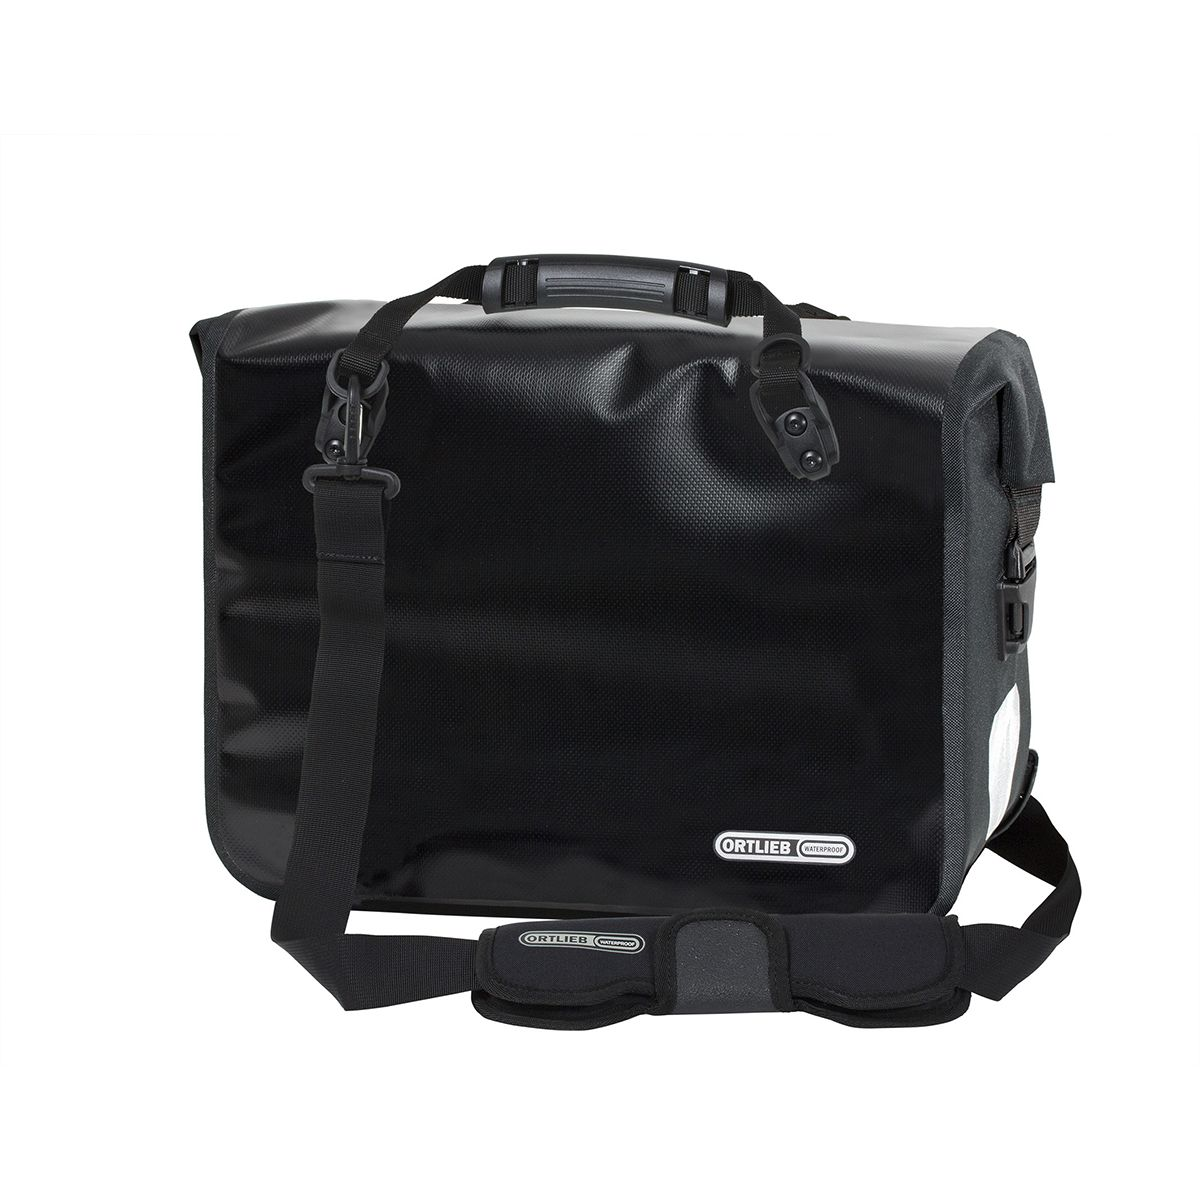 Office BAG QL 2.1L pannier bag